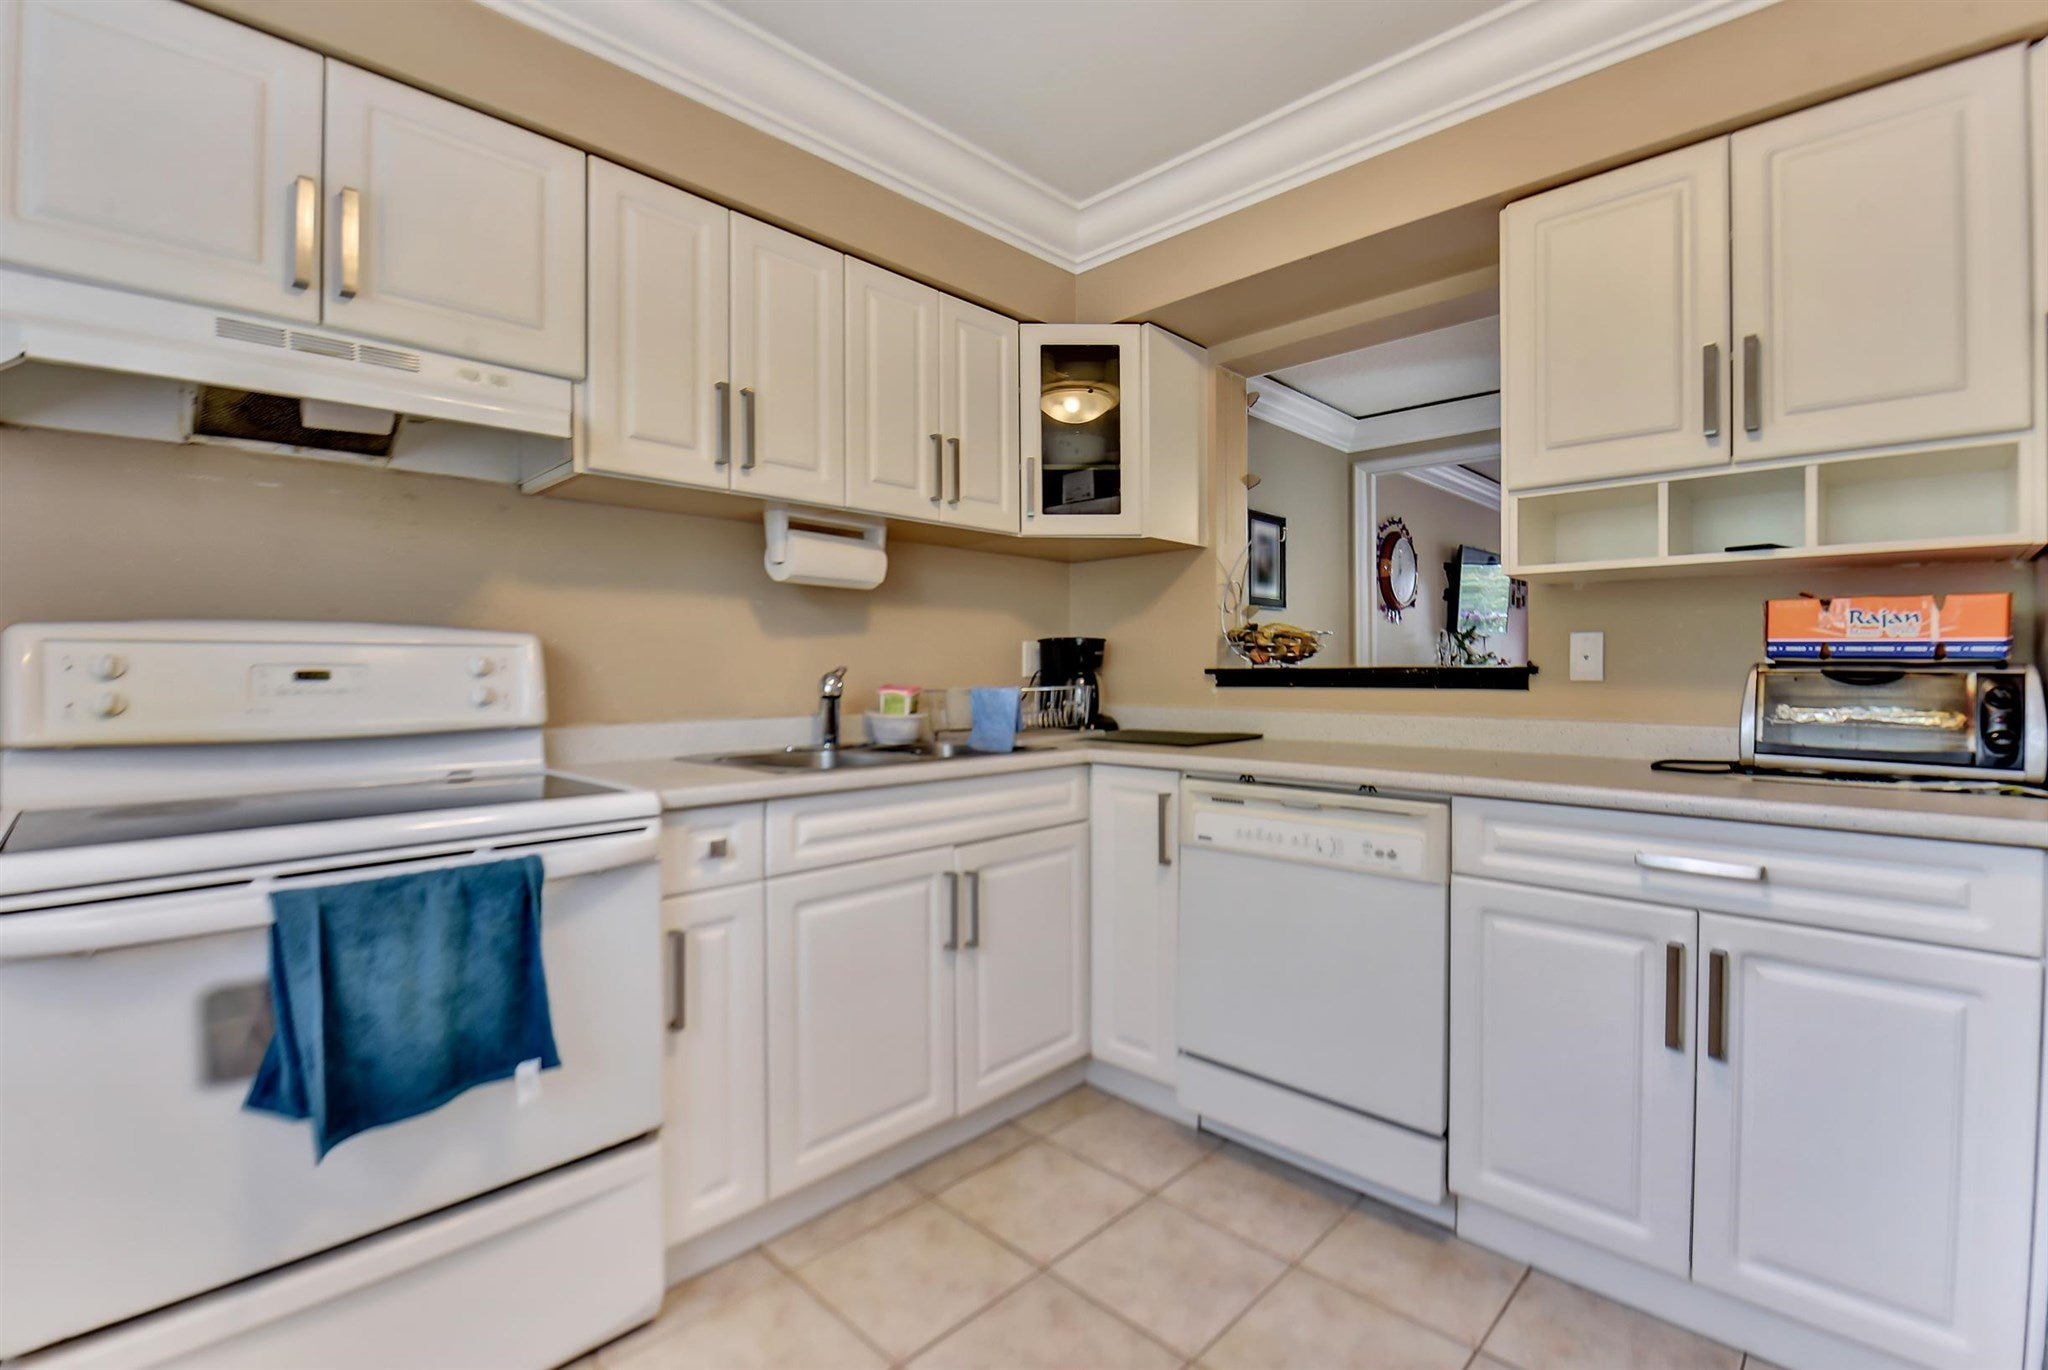 31 12045 93A AVENUE - Queen Mary Park Surrey Townhouse for sale, 4 Bedrooms (R2603608) - #5